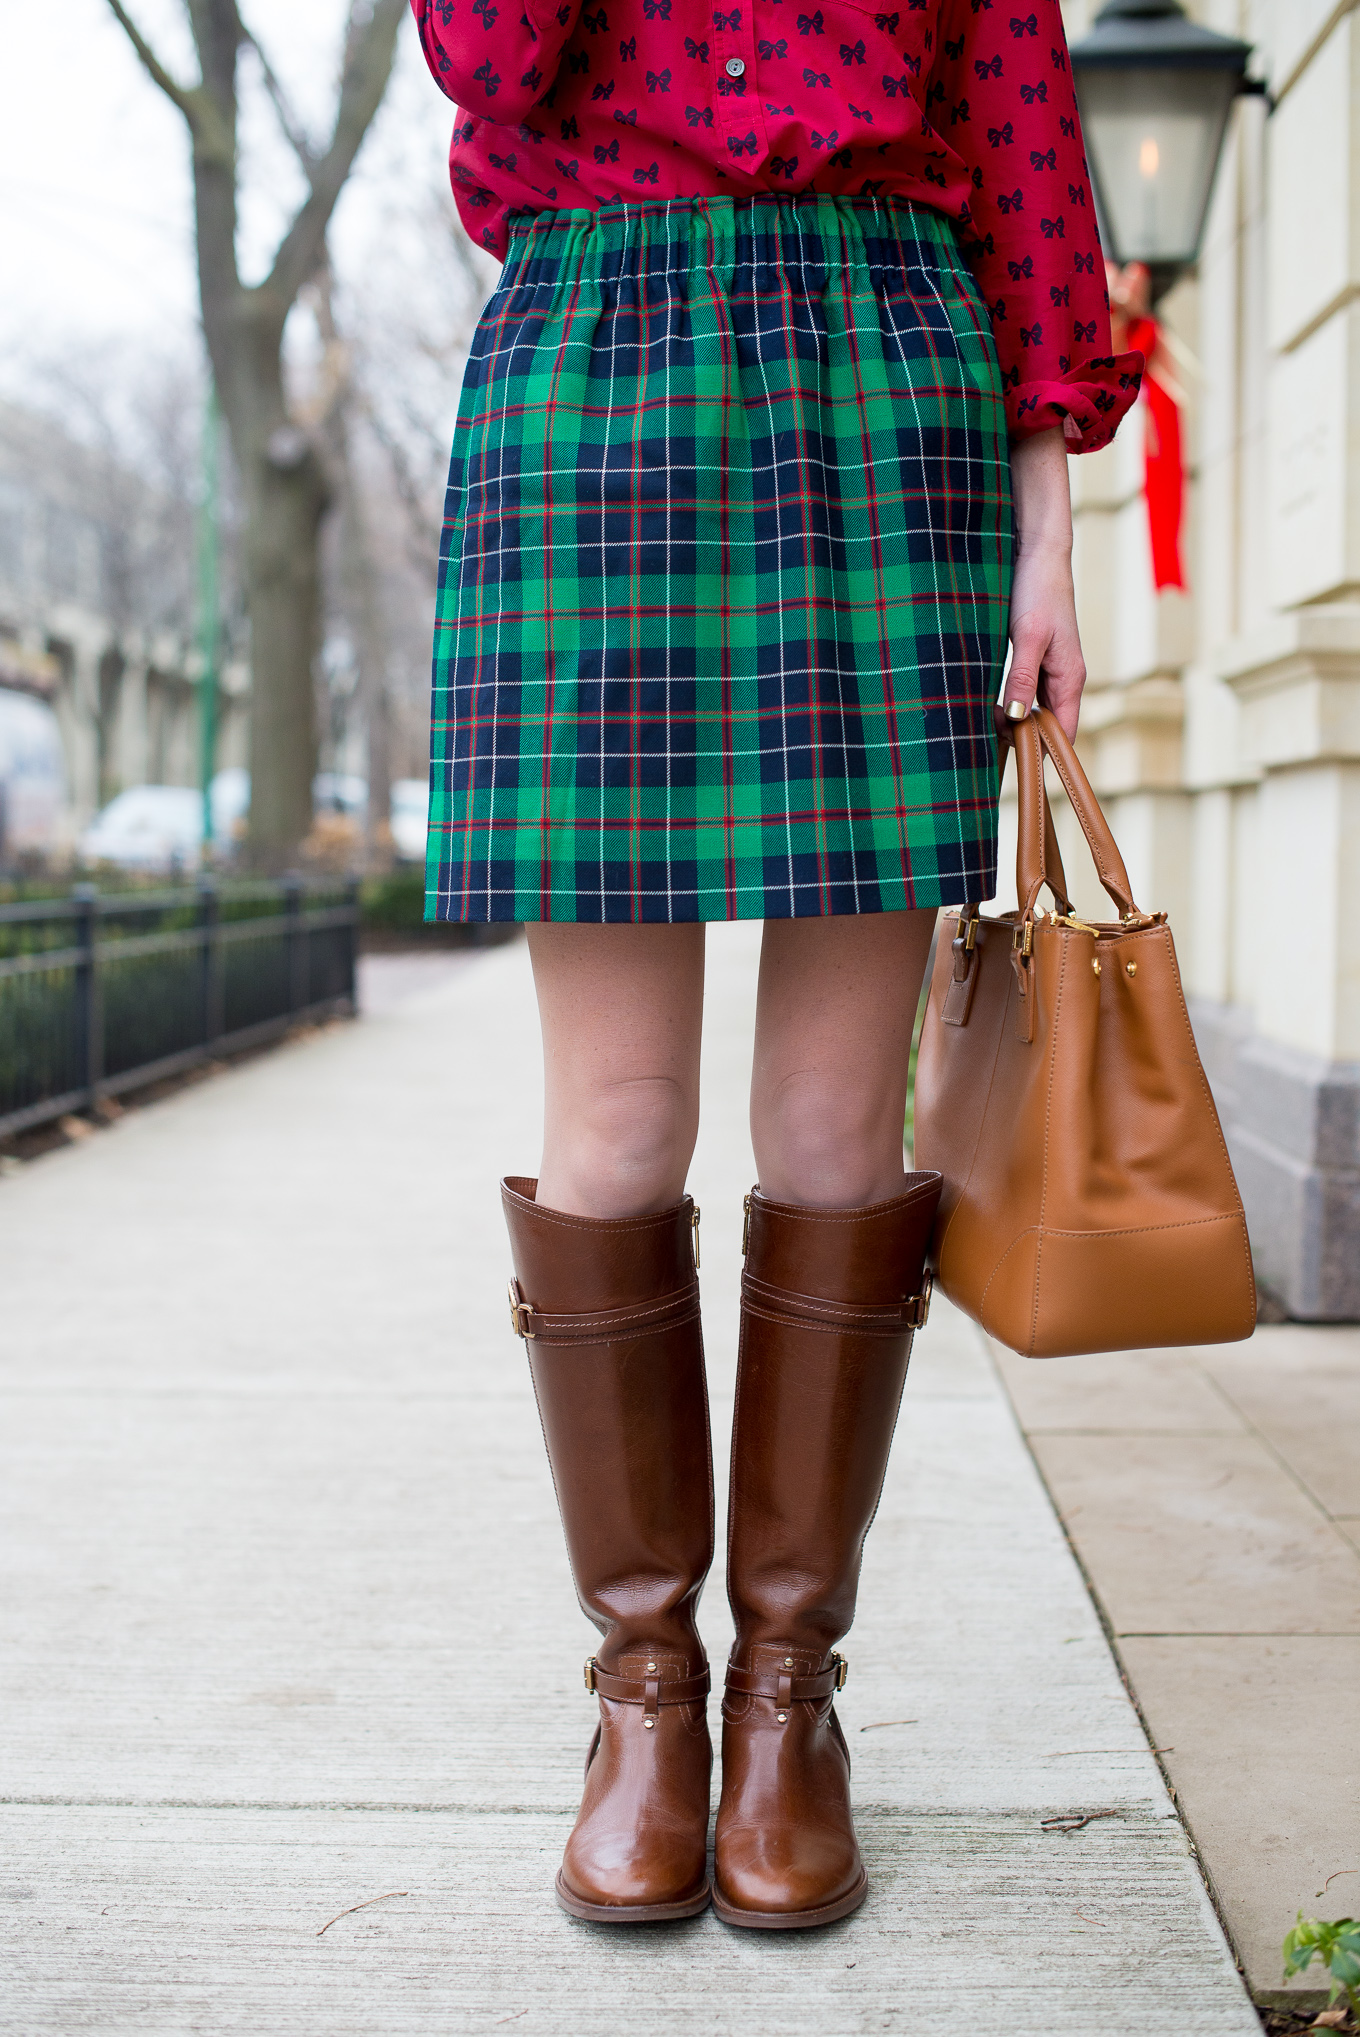 Tory Burch Riding Boots-16